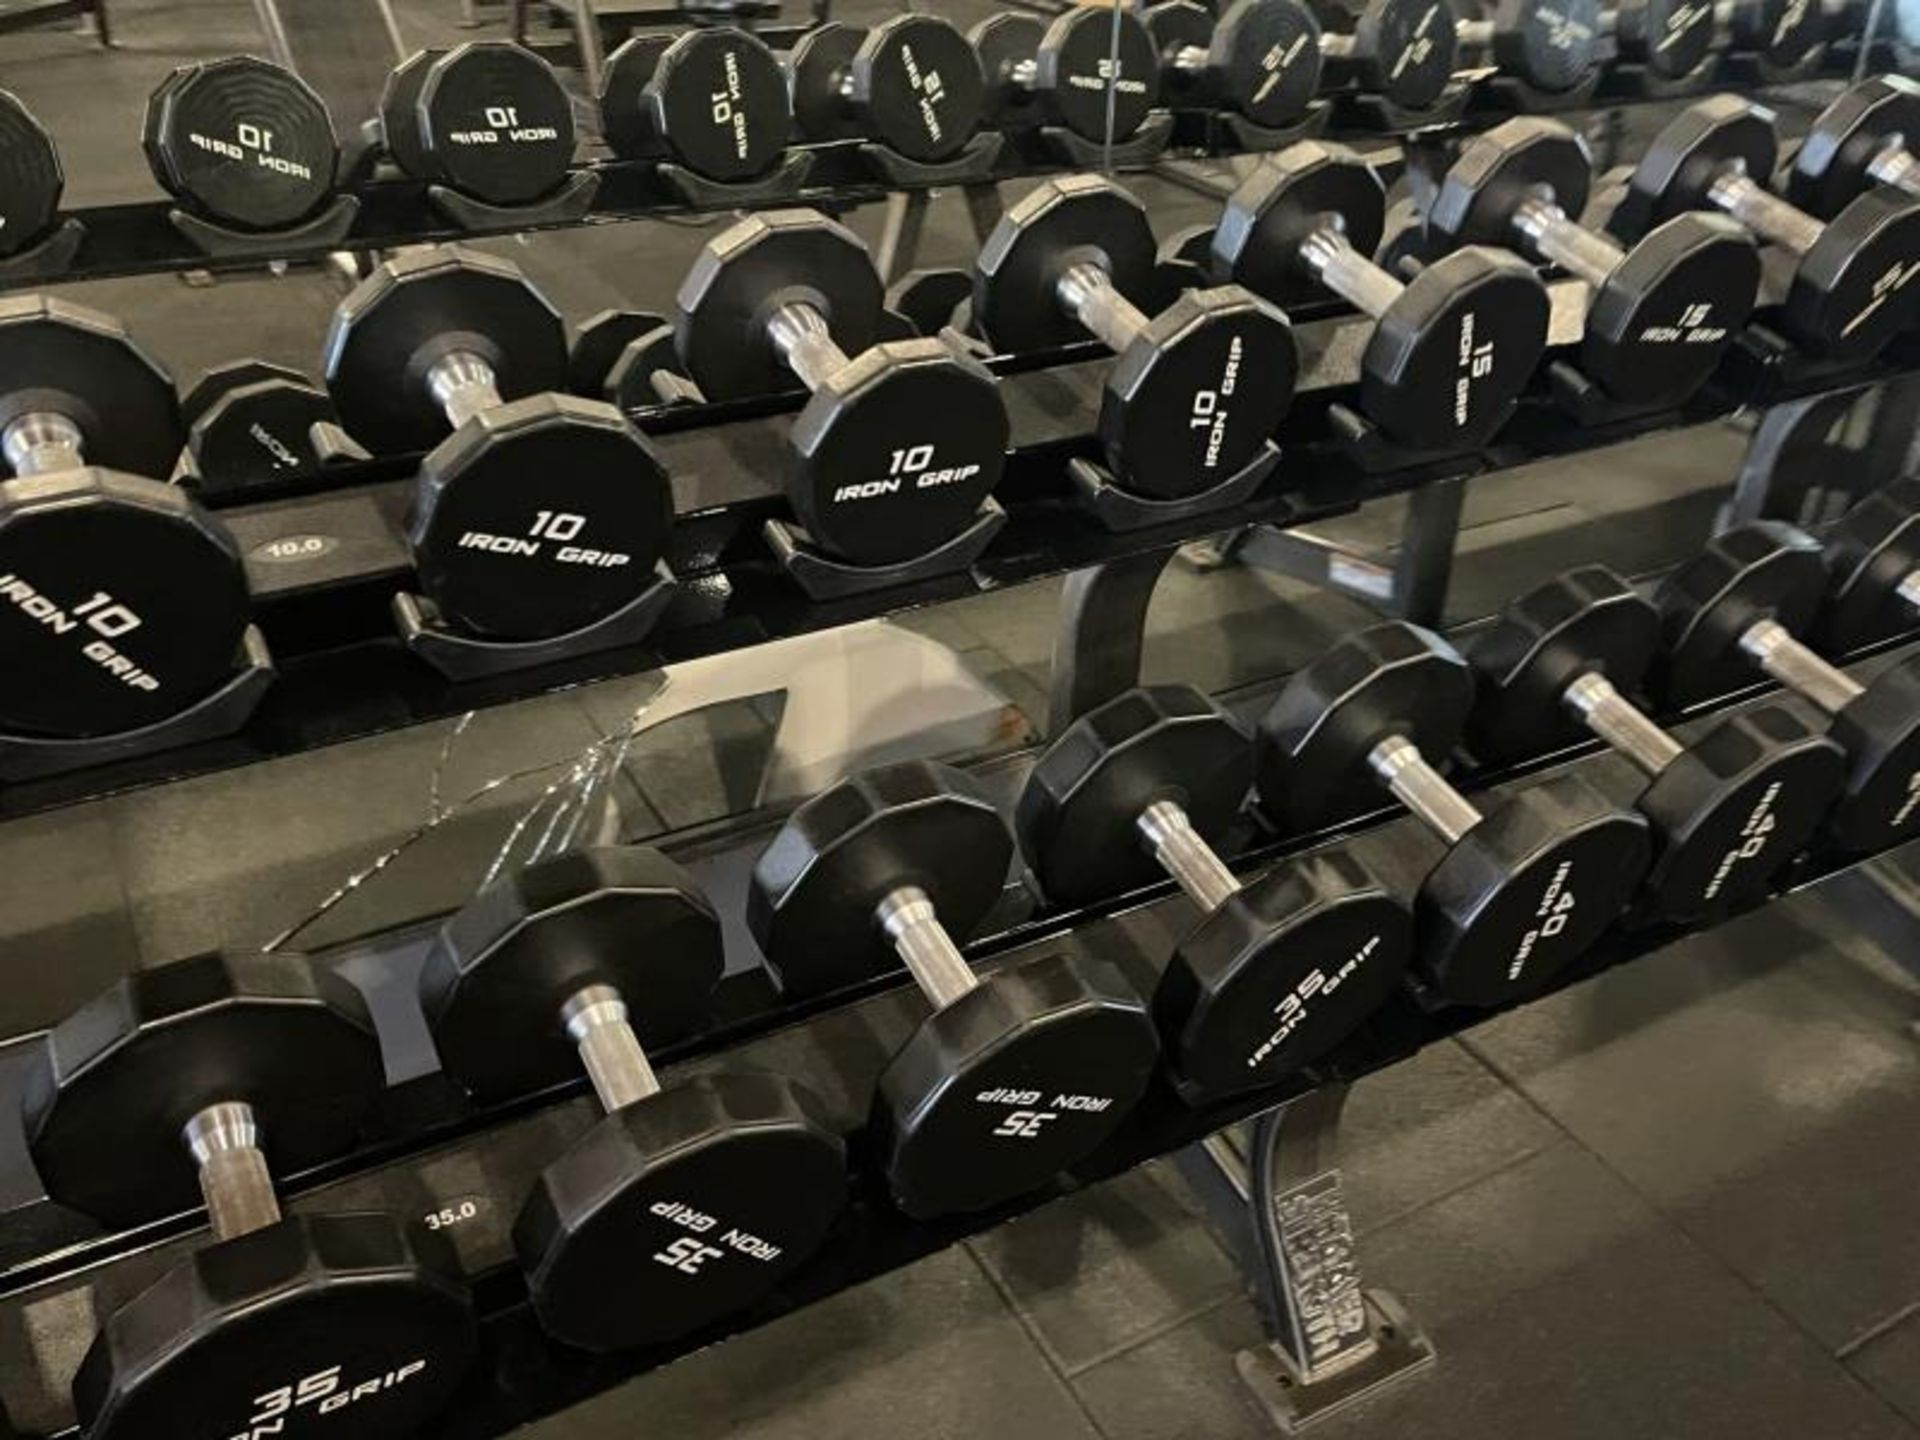 Iron Grip Dumbbell 5-100# with Hammer Strength 2 Tier Racks - Image 3 of 9